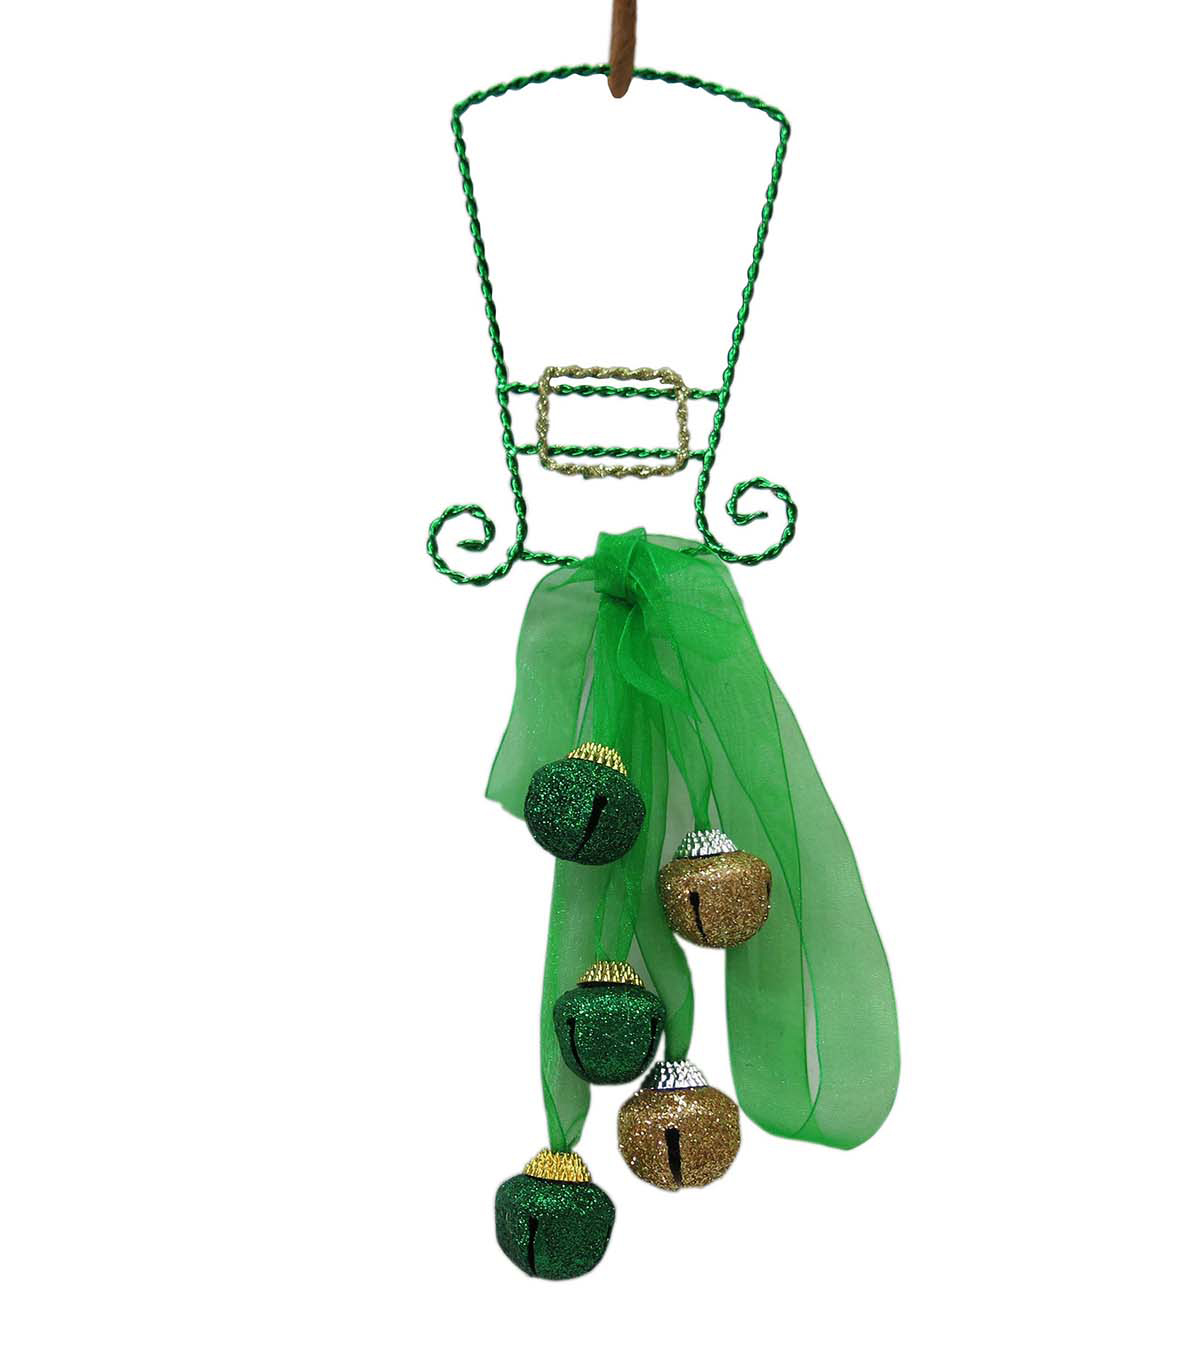 St. Patrick\u0027s Day Decor 5.25\u0027\u0027x13.25\u0027\u0027 Hat Door Hanger